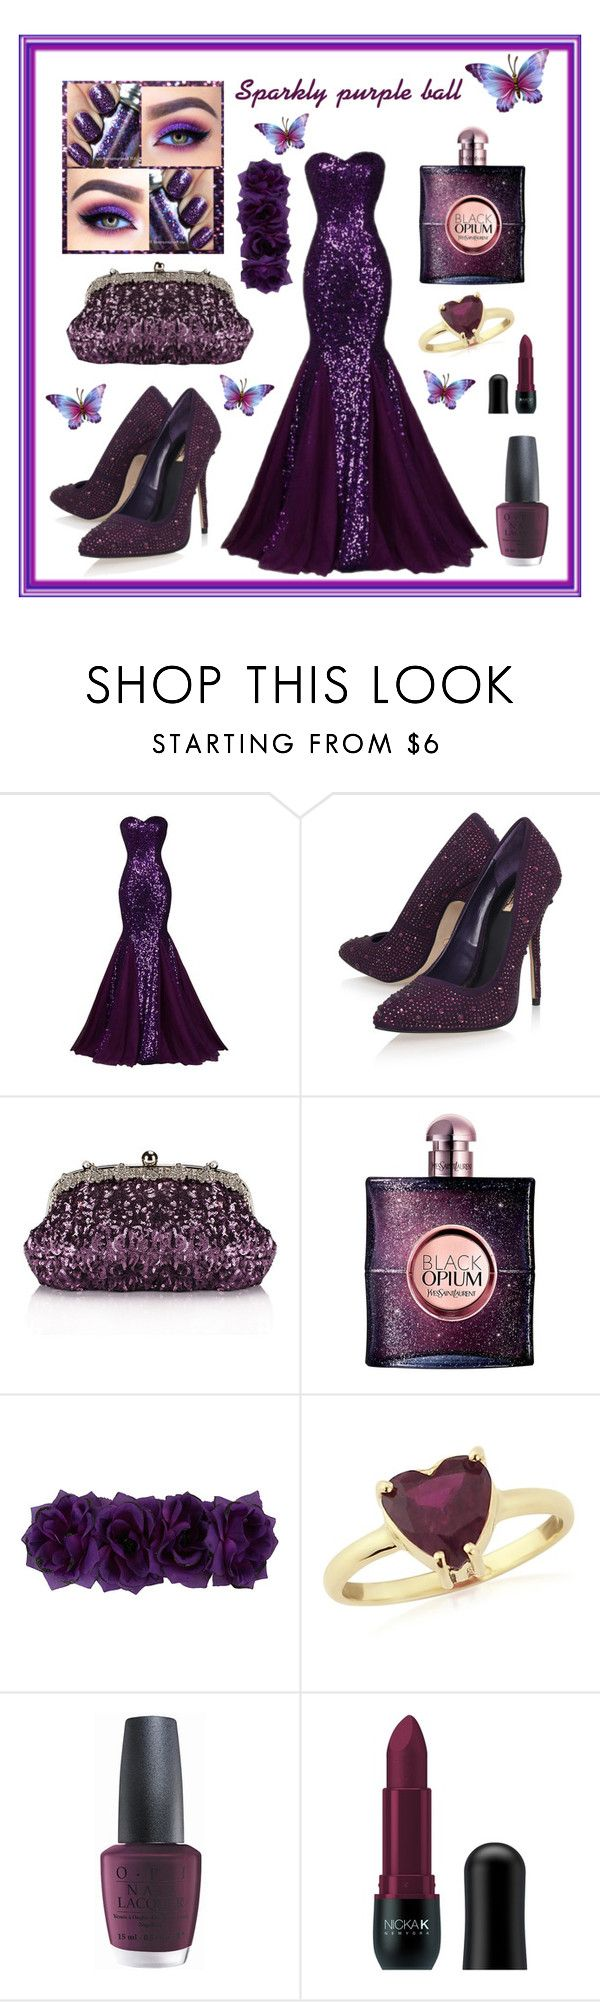 """Sparkly purple ball"" by nicolencok ❤ liked on Polyvore featuring Carvela Kurt Geiger, Chicnova Fashion, Yves Saint Laurent, Krausz Jewellery, OPI and Nicka K"